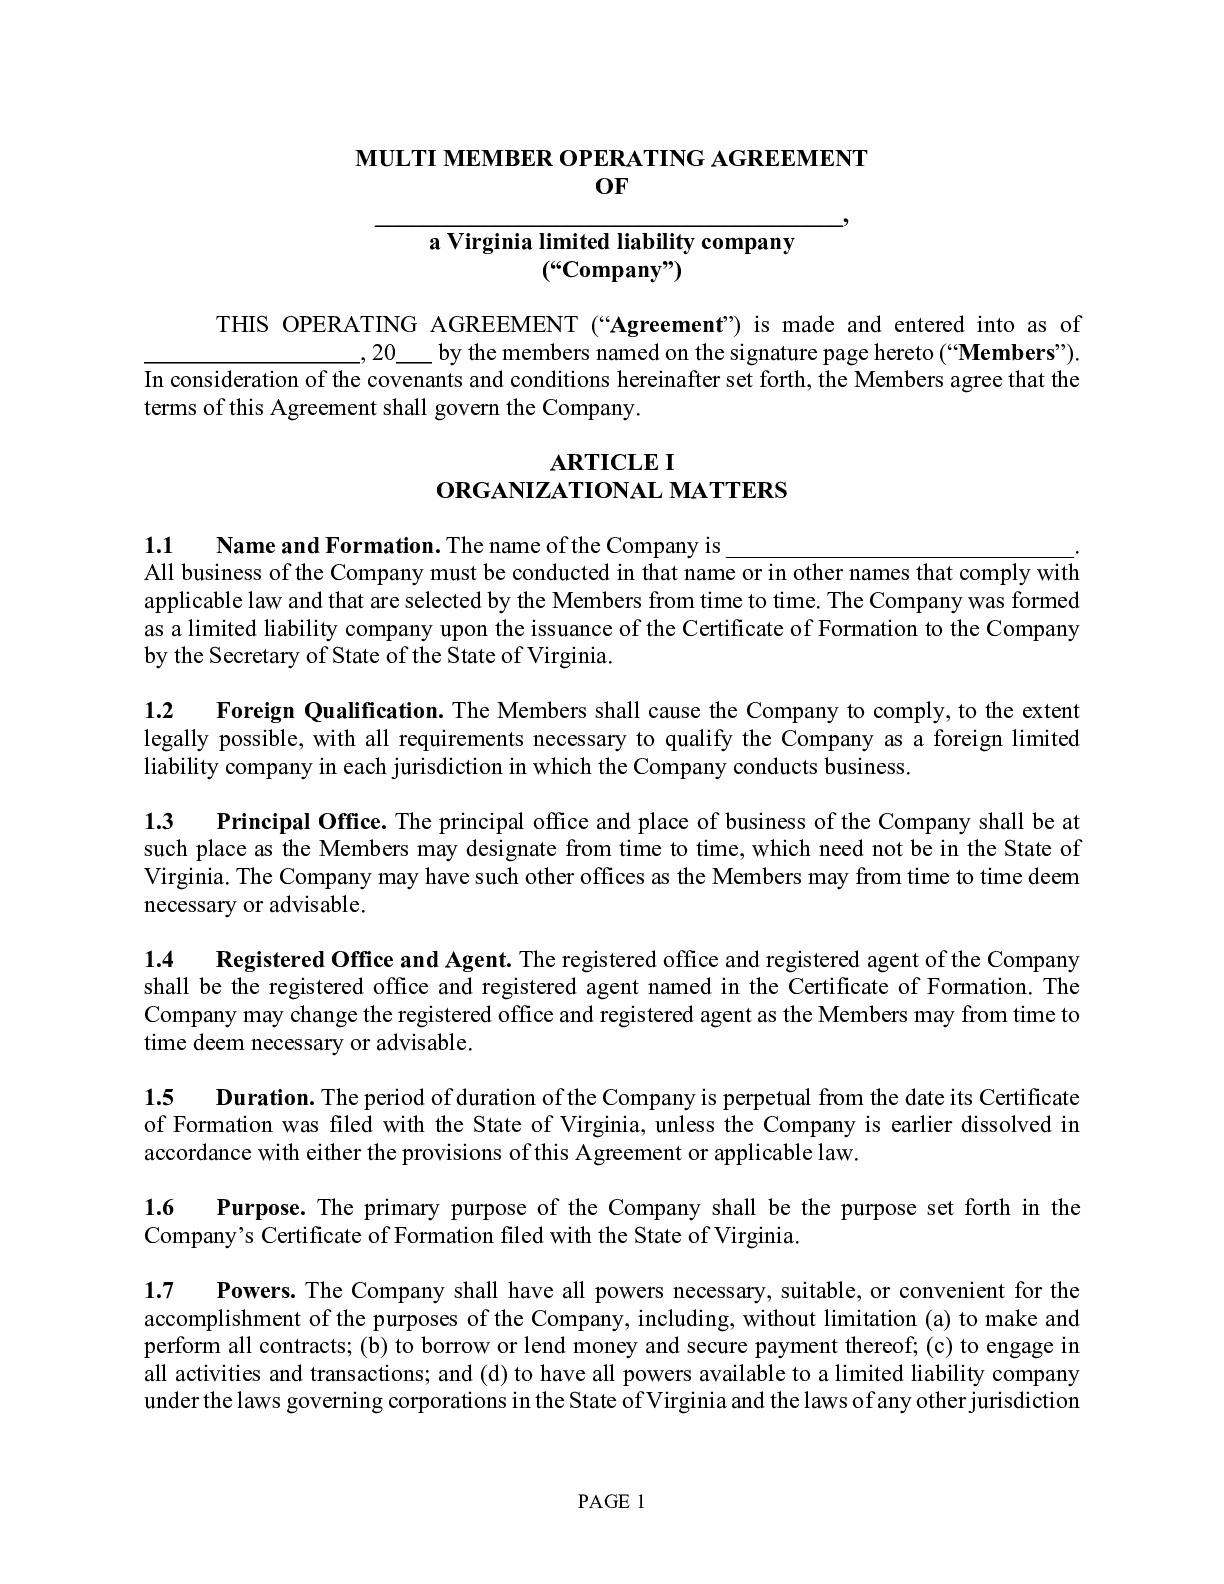 Using our pdf template operating agreement, you can design your own agreement suing this as a guide al the way. Free Virginia Llc Operating Agreement Template Pdf Word